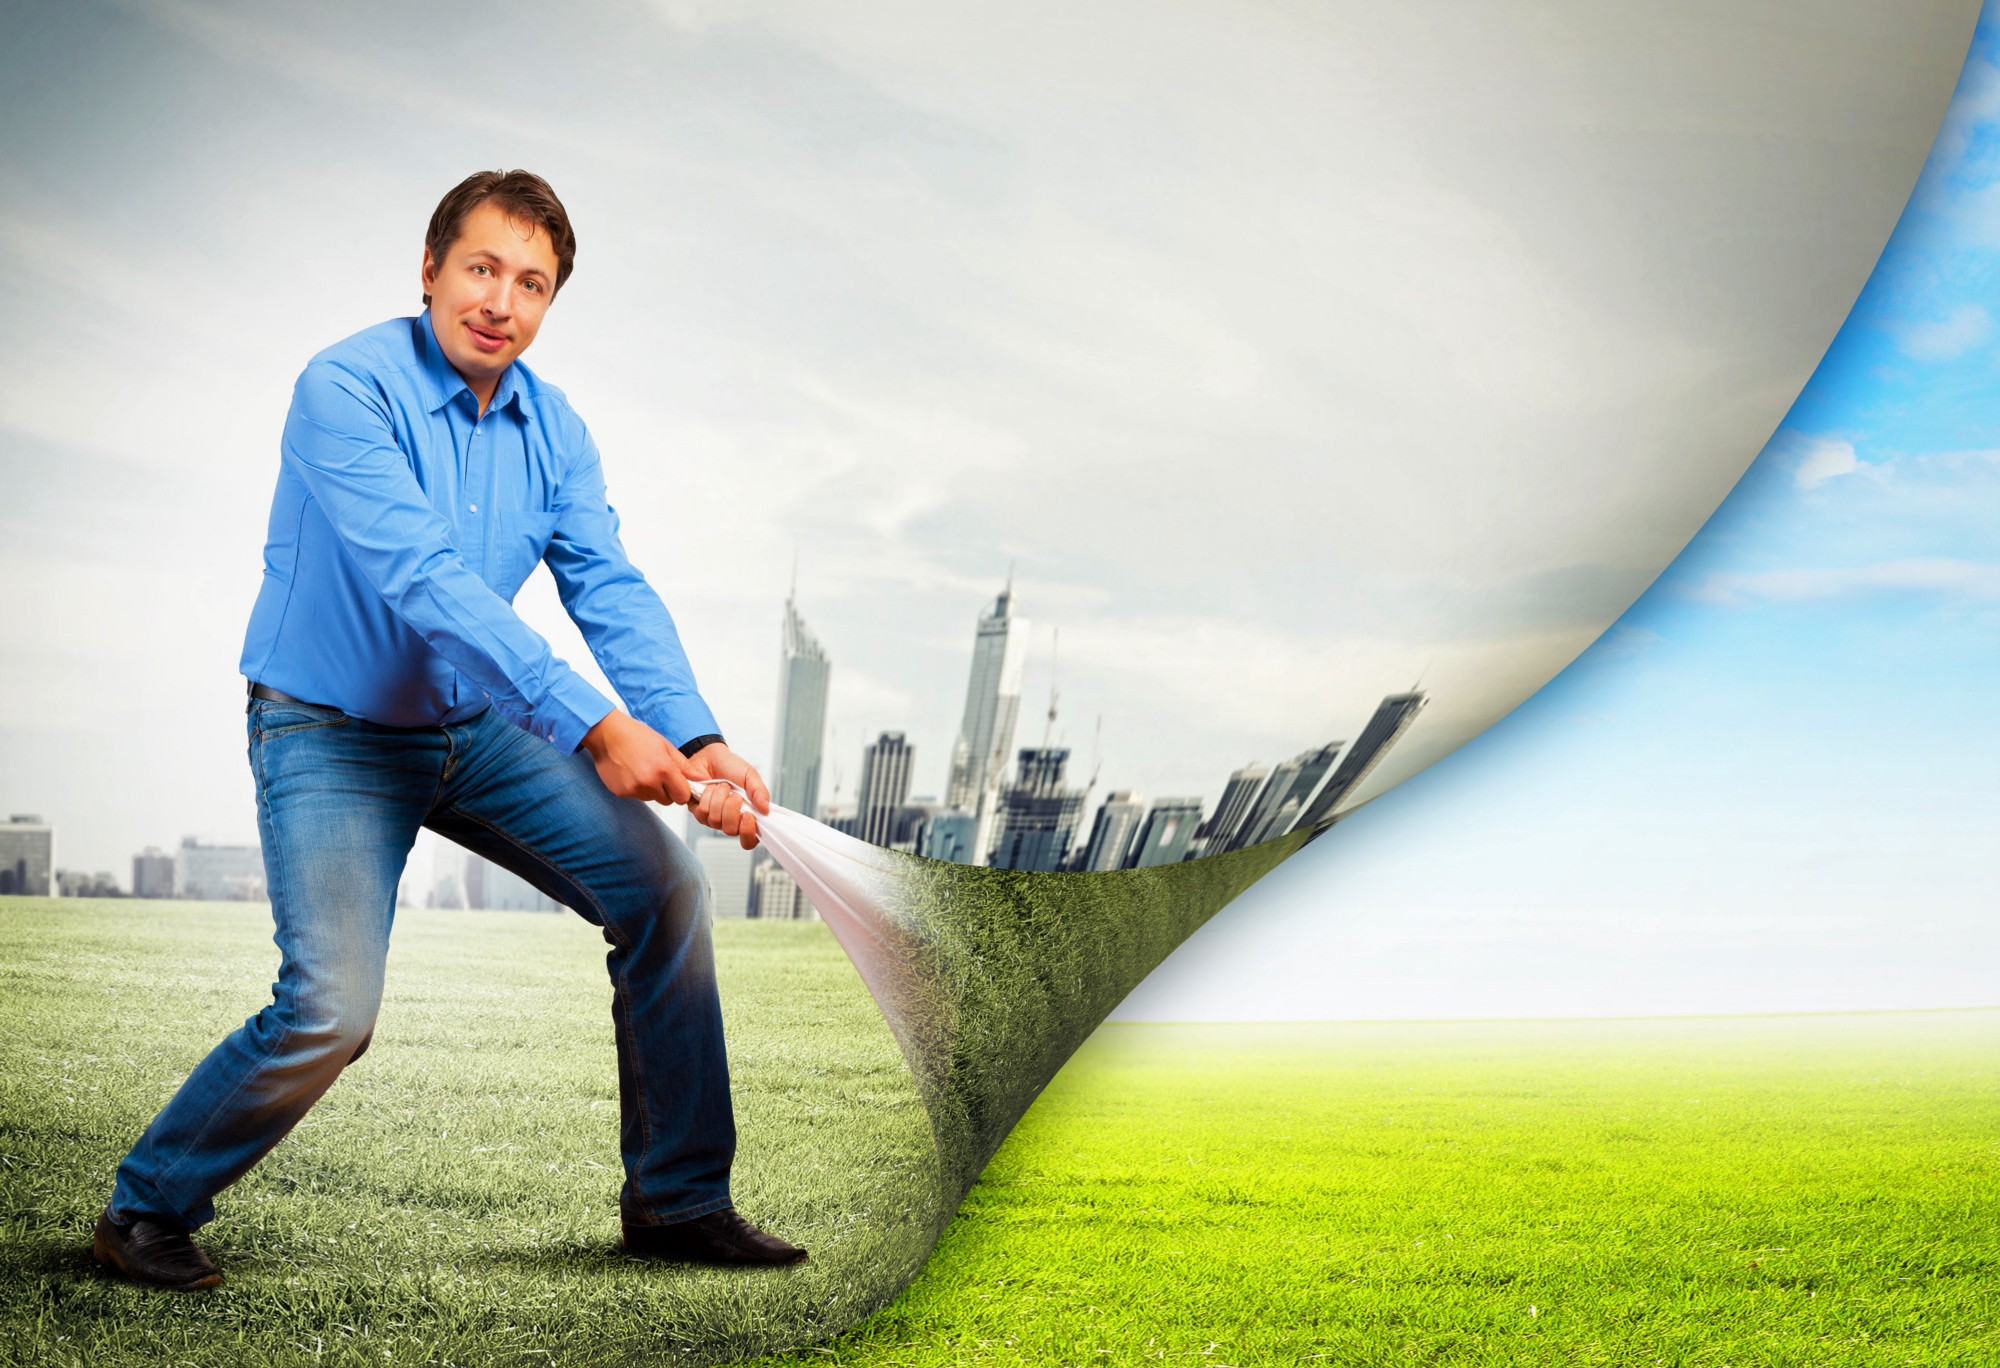 man wearing light blue shirt and blue jeans pulling corner of photo between old and new life